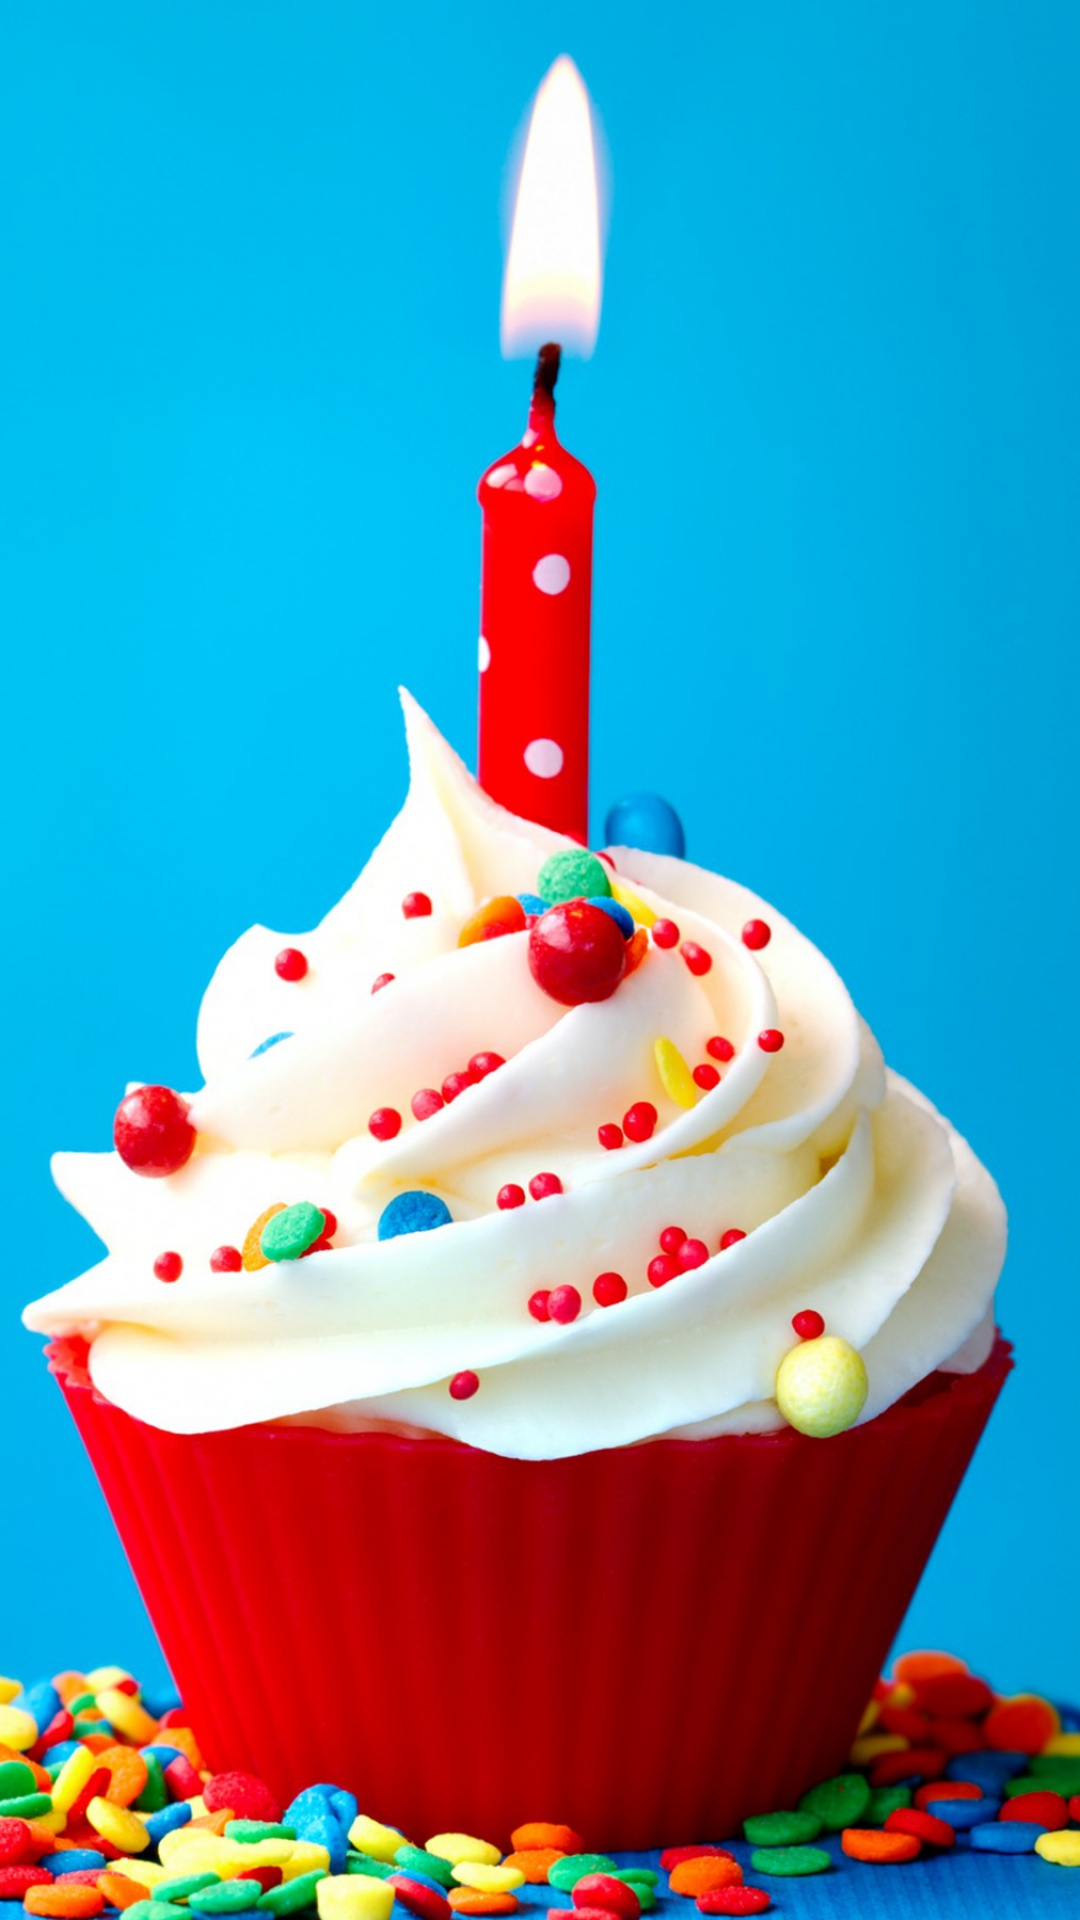 Birthday cake best htc one wallpapers free and easy to - Zedge happy birthday wallpapers ...